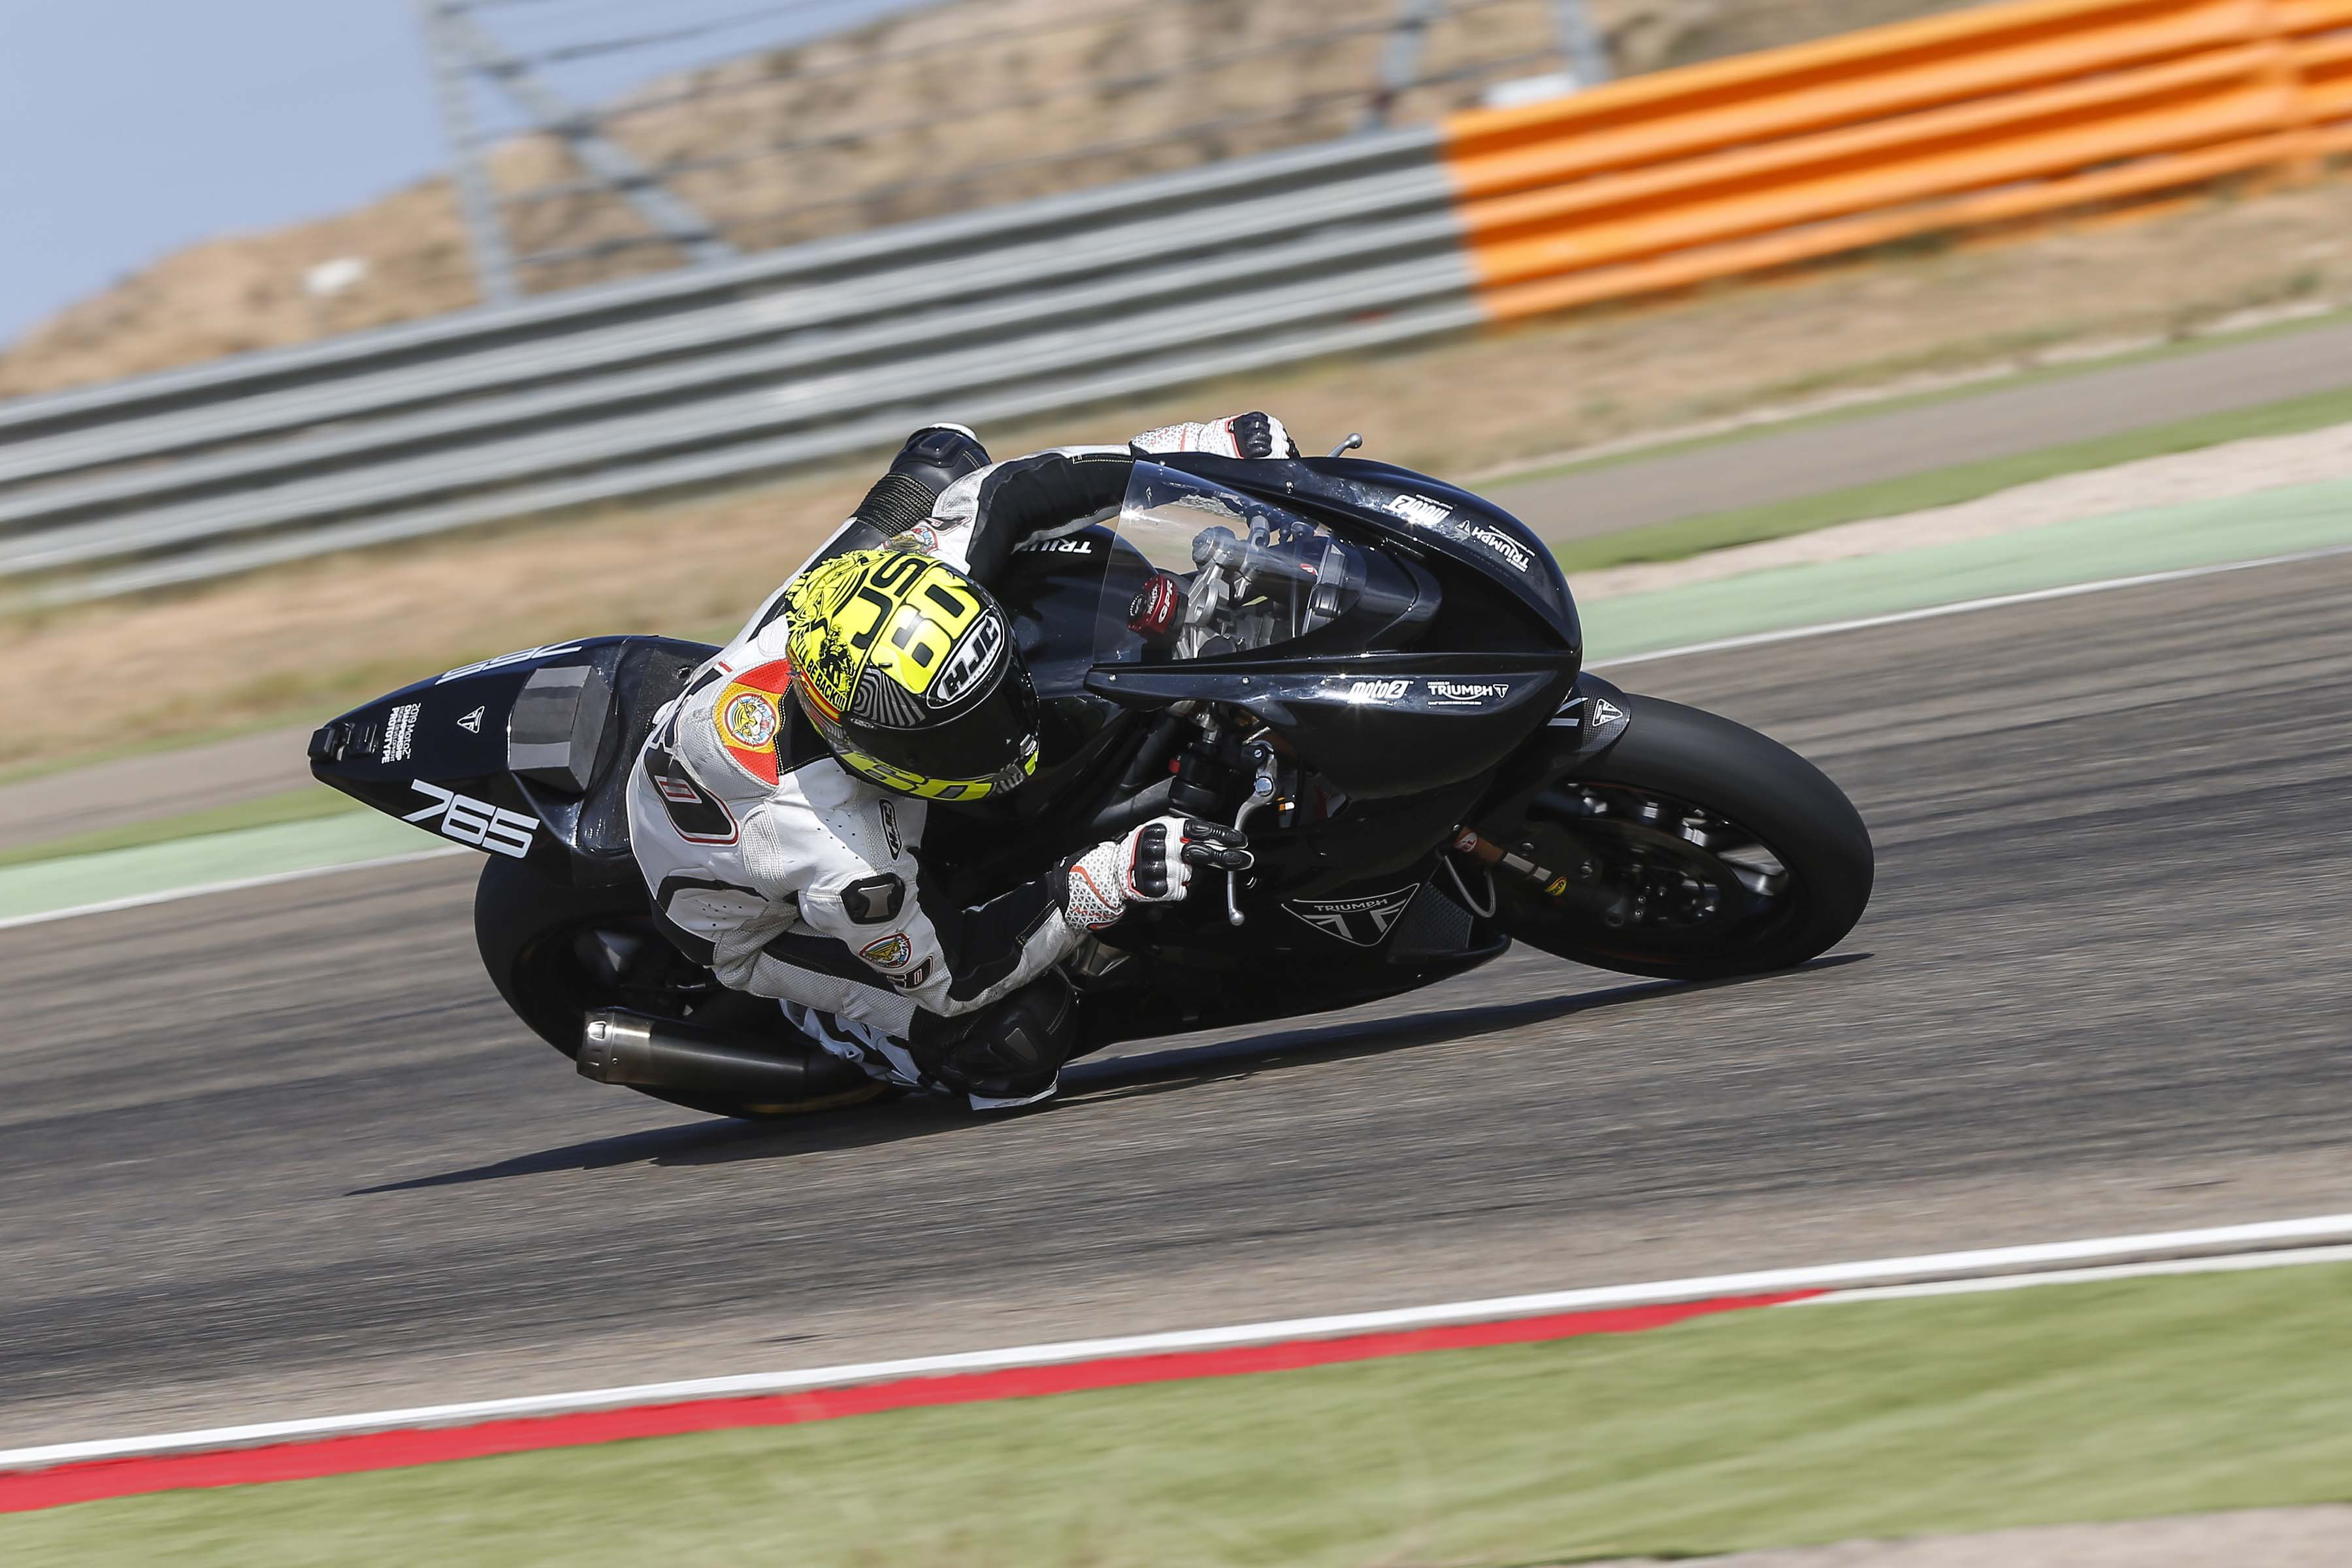 Triumph Daytona 765 Moto2 test bike 16